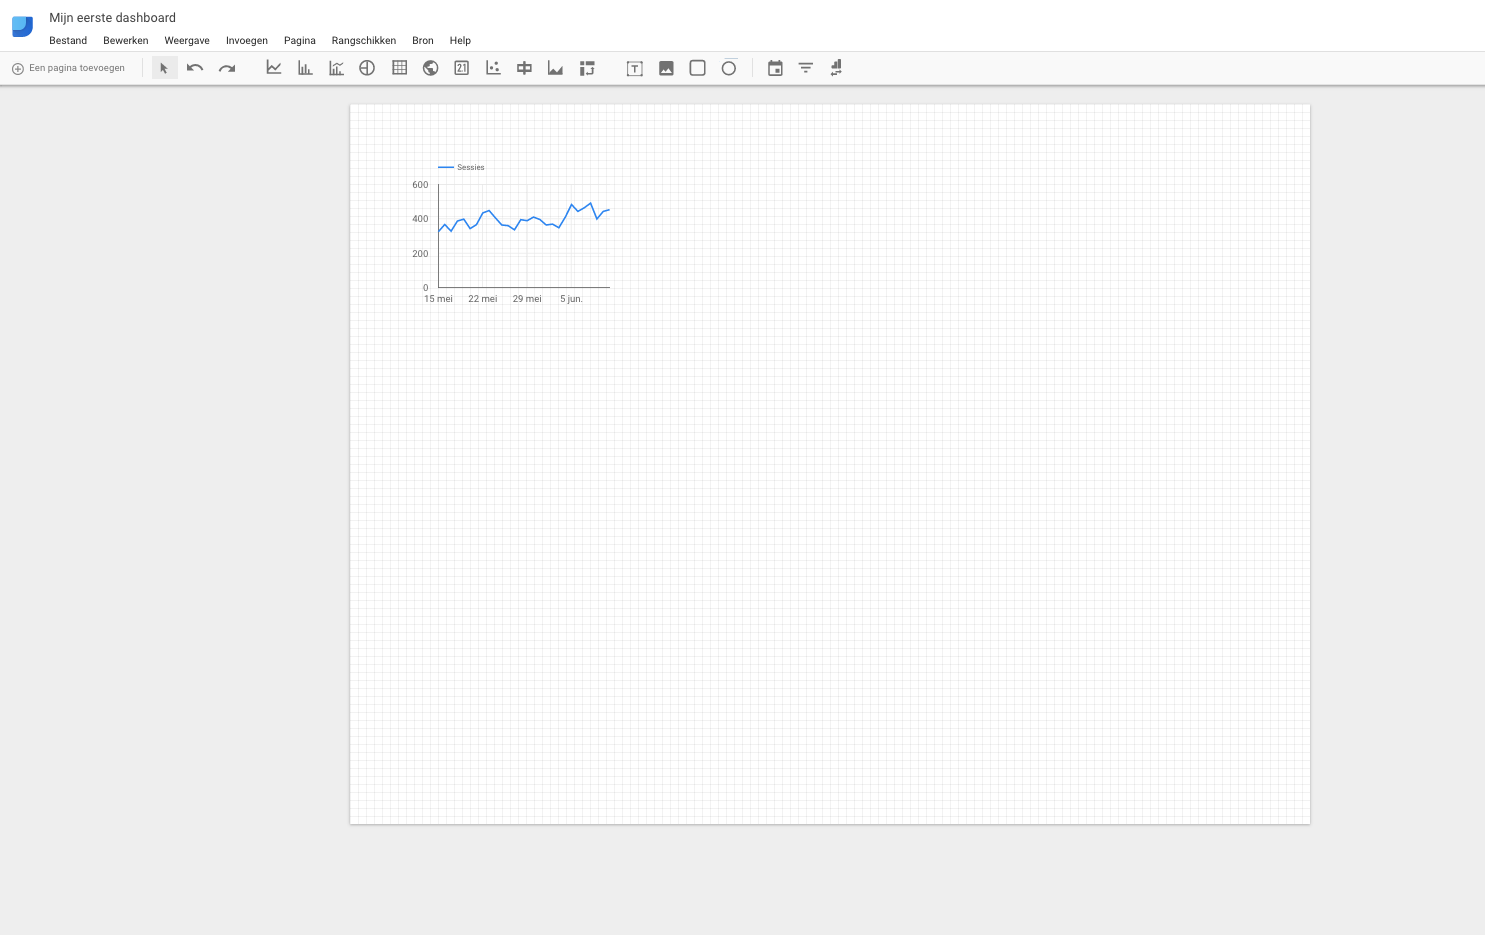 Nieuw dashboard in Google Data Studio